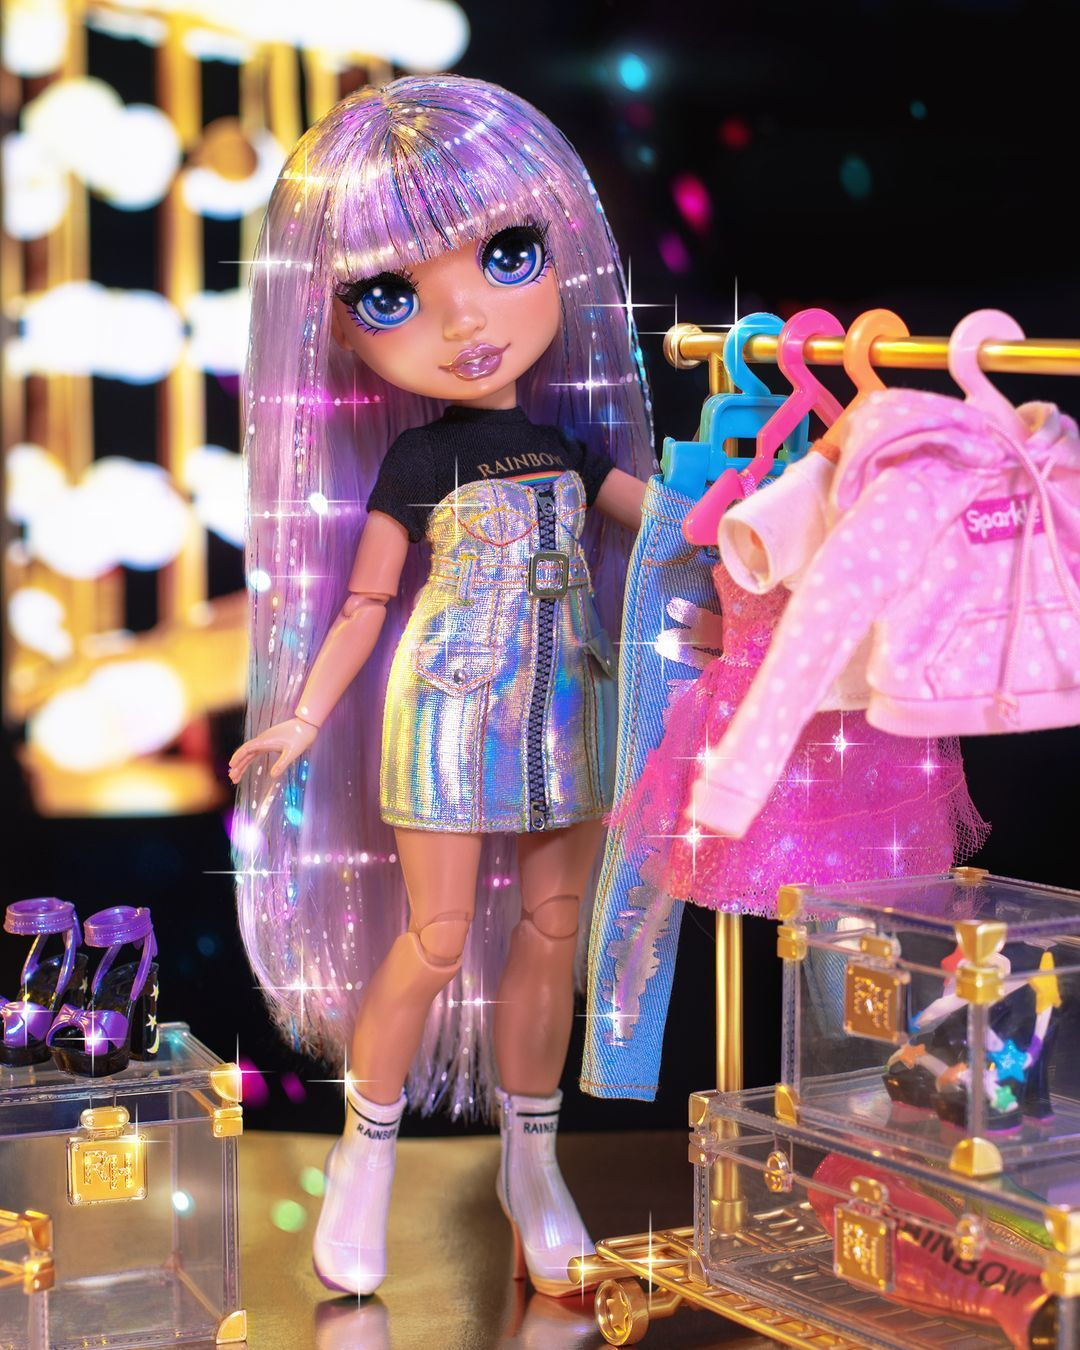 Details about  /Rainbow High Fashion Studio Avery Styles Doll /& Pink Purple Lavendar Wig NEW!